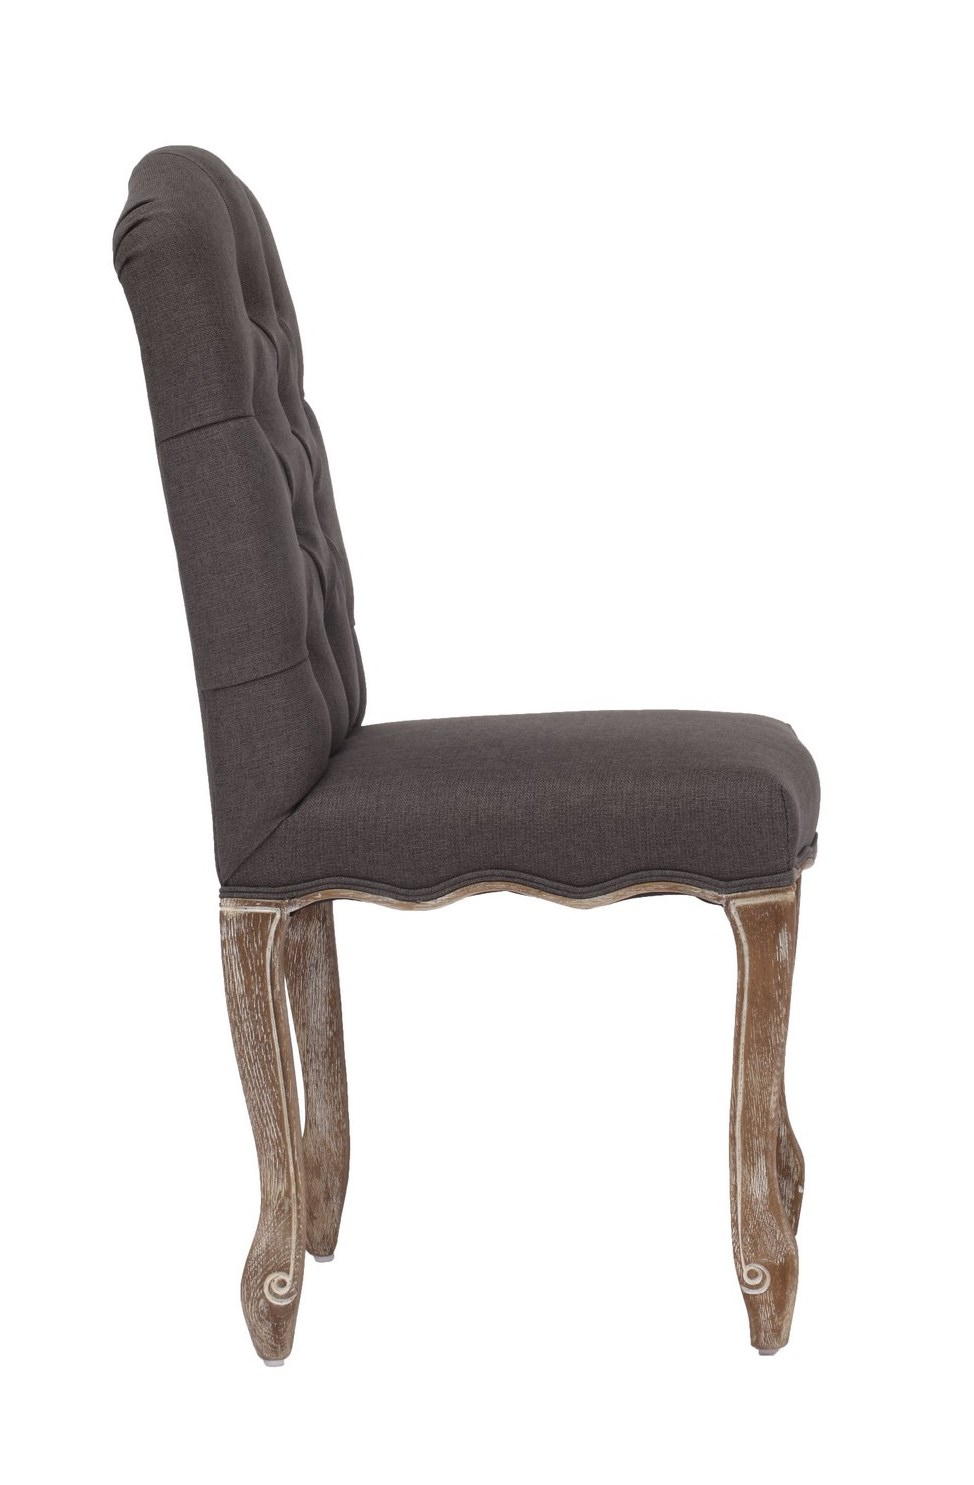 noe valley traditional dining chair in charcoal gray efurniture mart